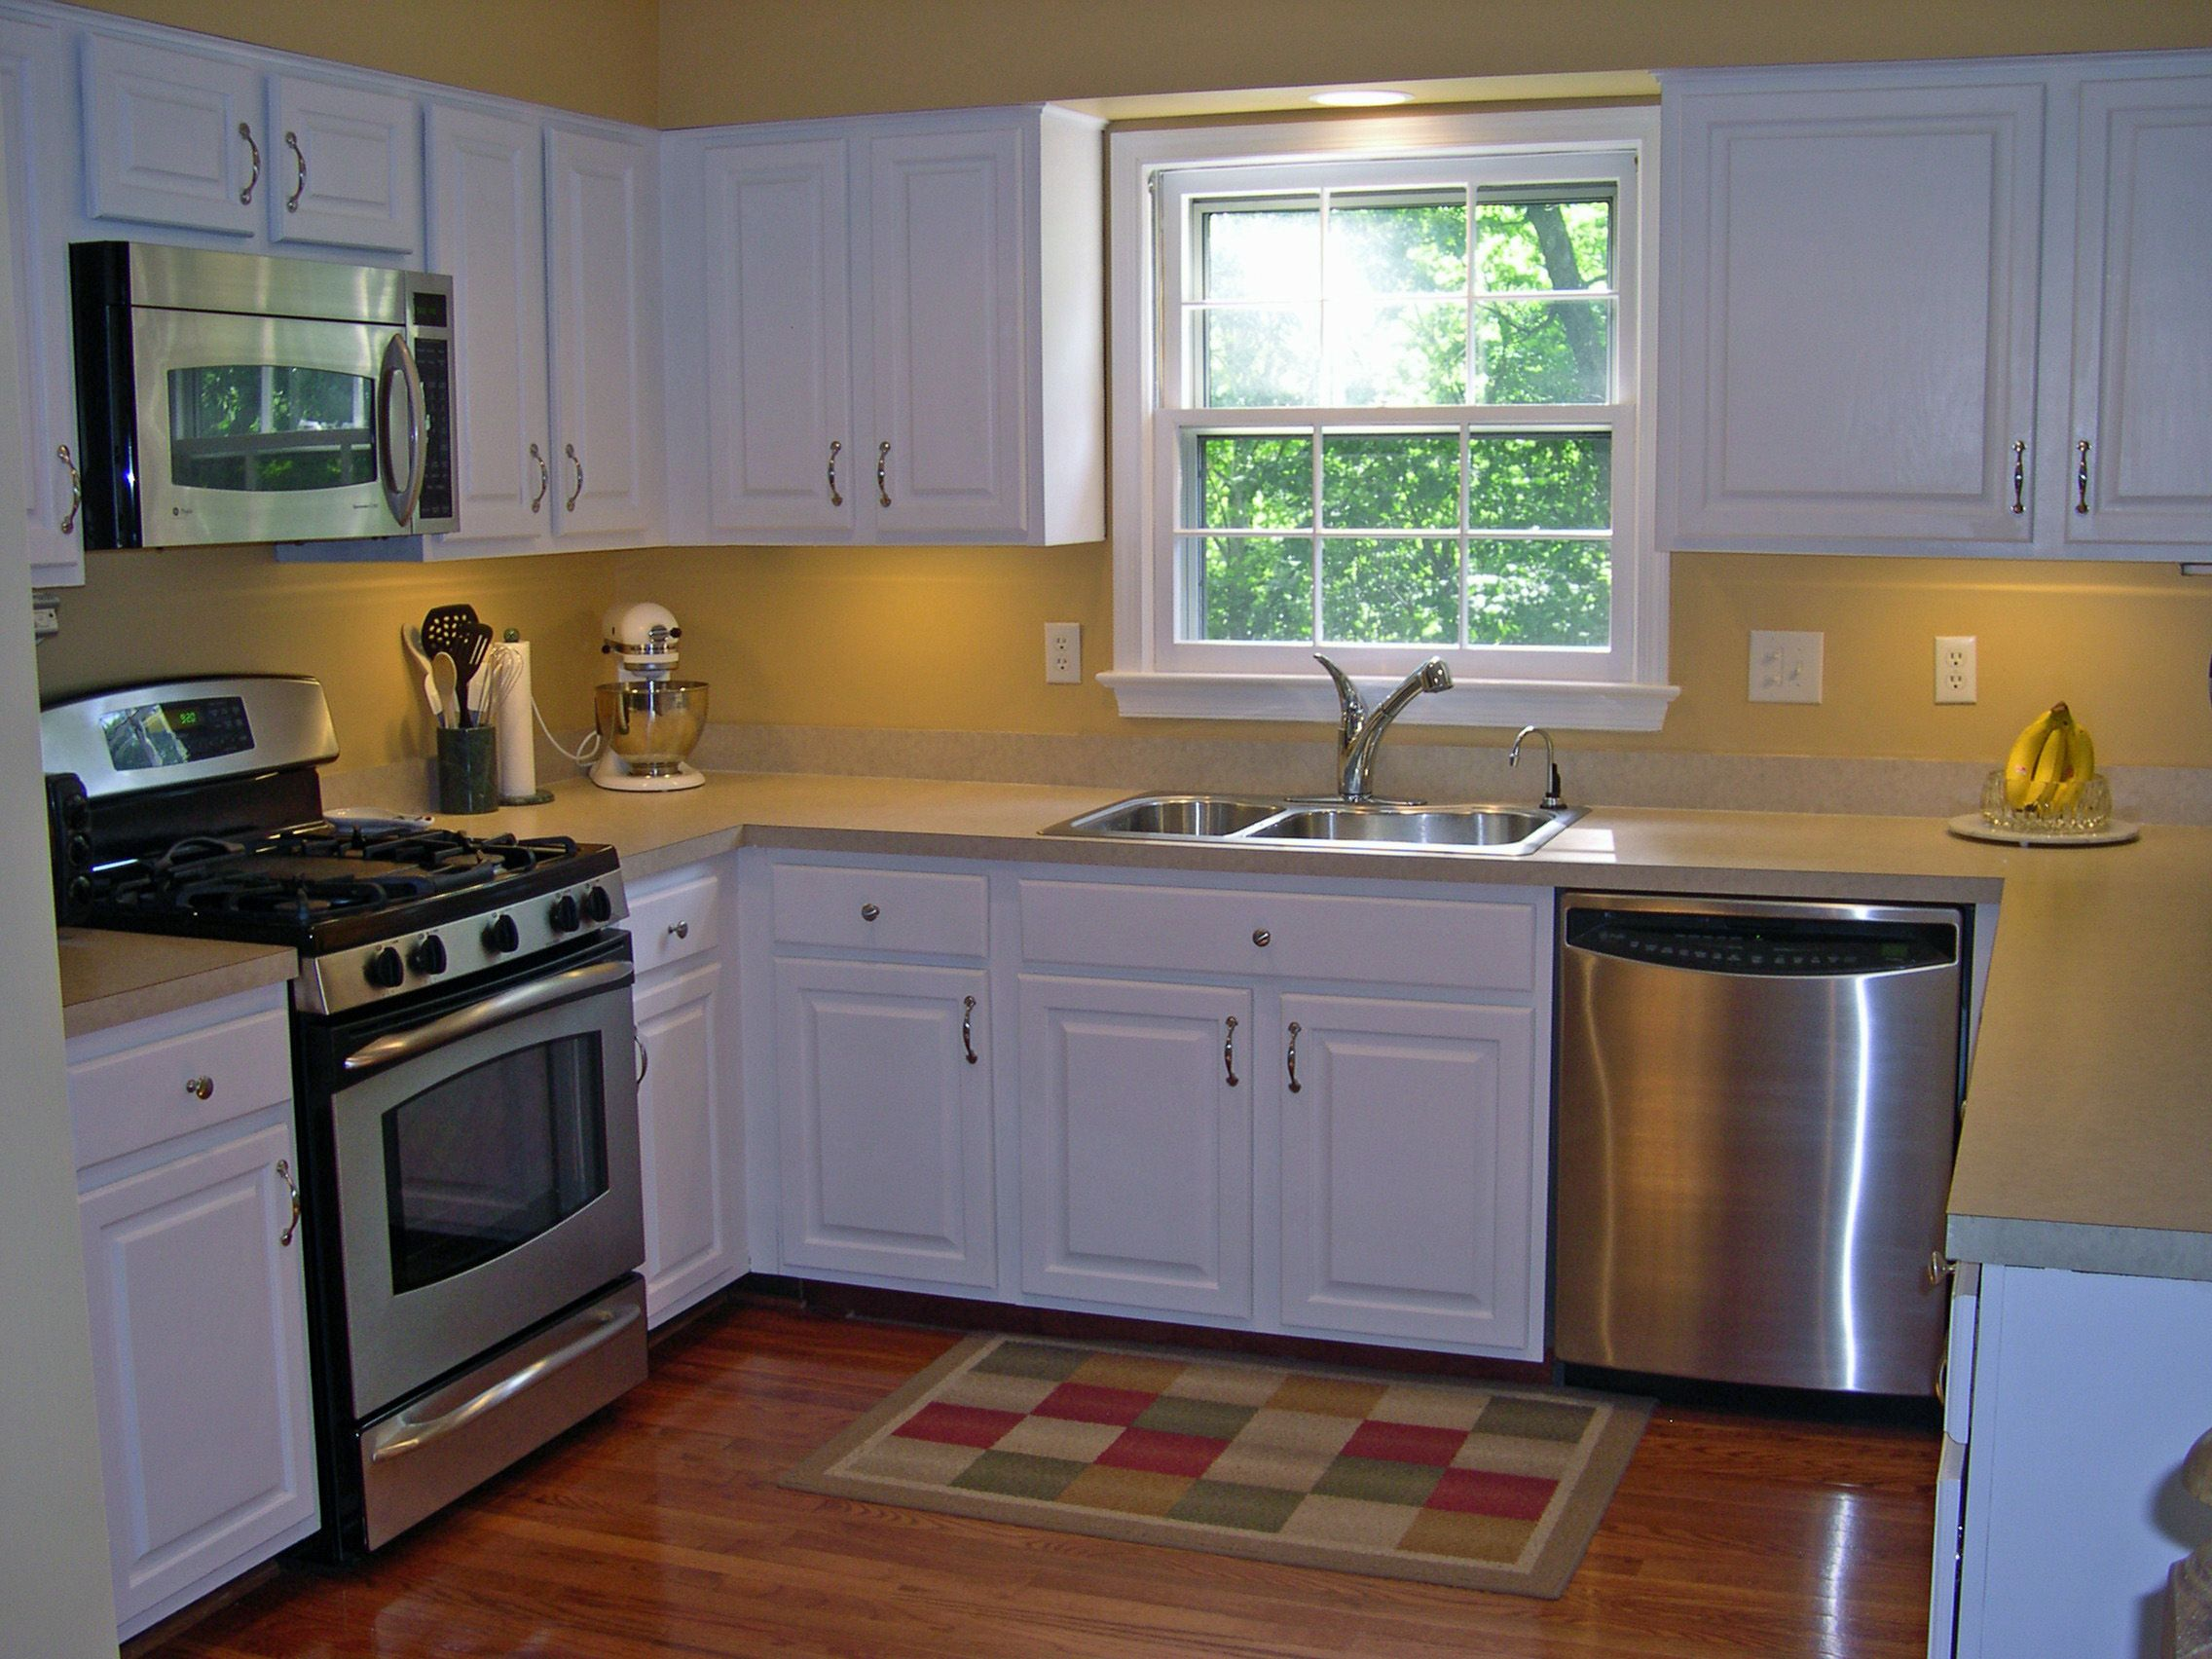 Kitchen Remodel On A Budget small kitchen remodeling ideas | small kitchen remodel ideas